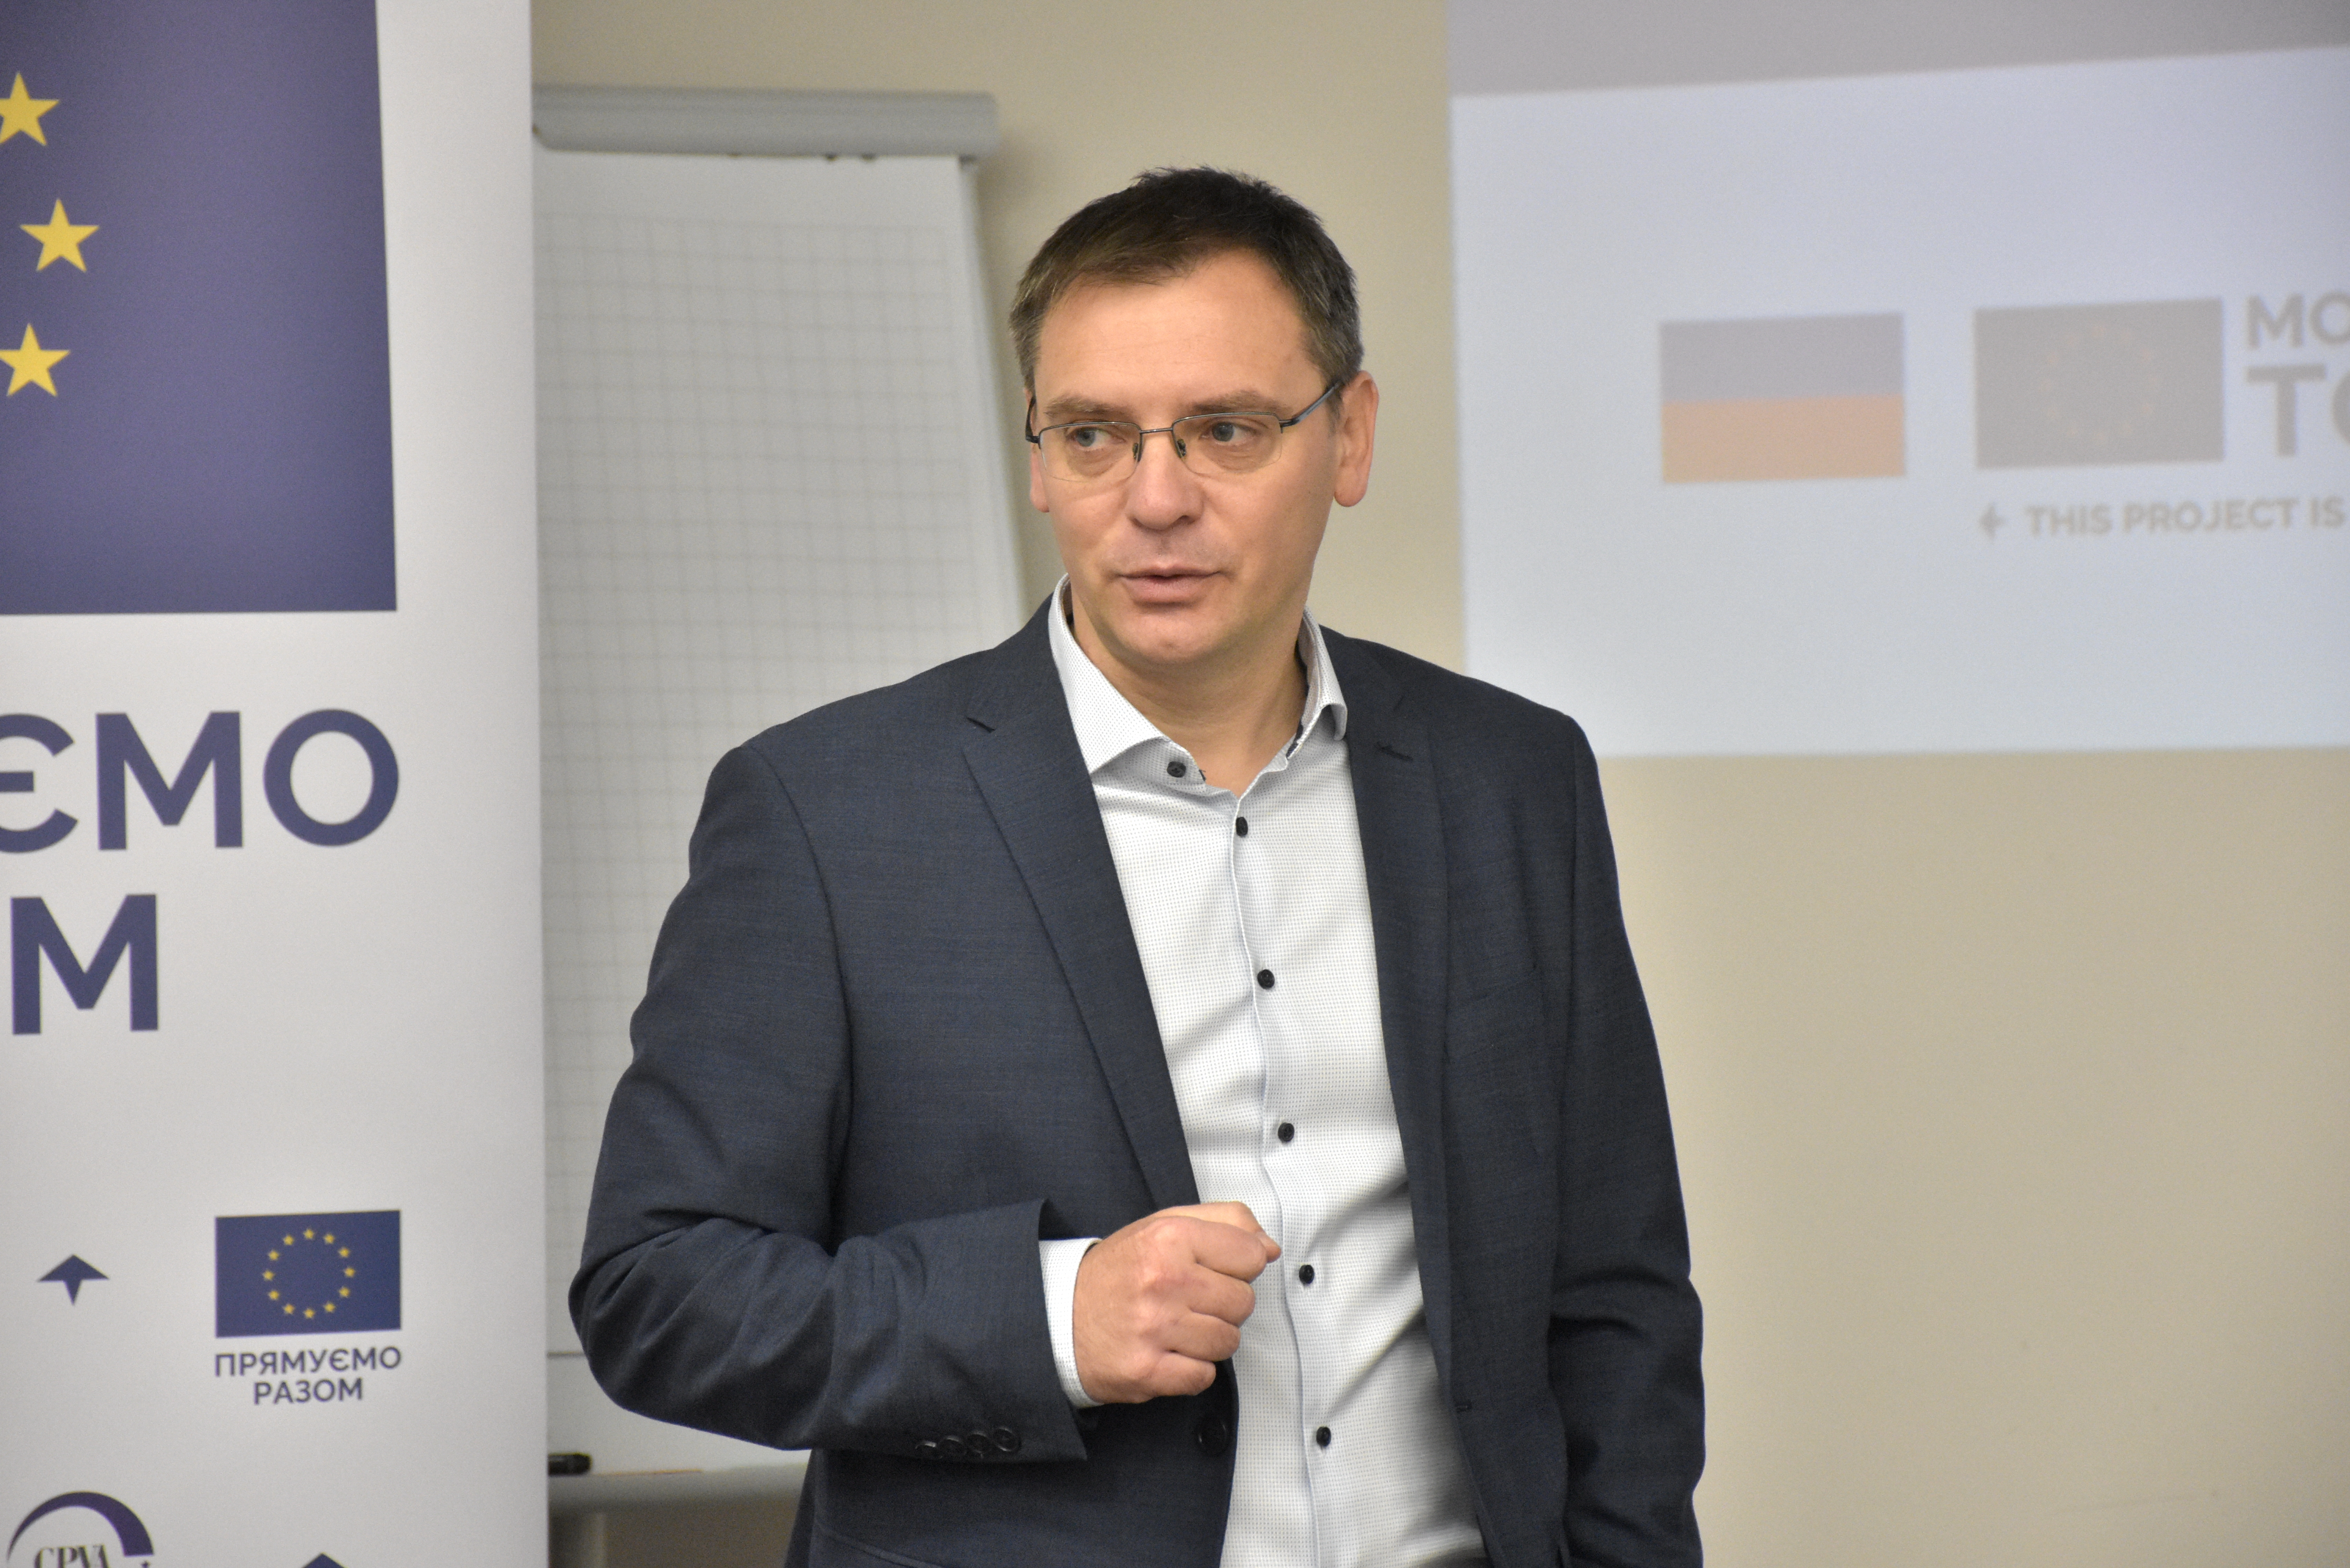 EU4PFM assists the State Customs Service of Ukraine and the Ministry of Finance of Ukraine to train staff in business process optimization technologies